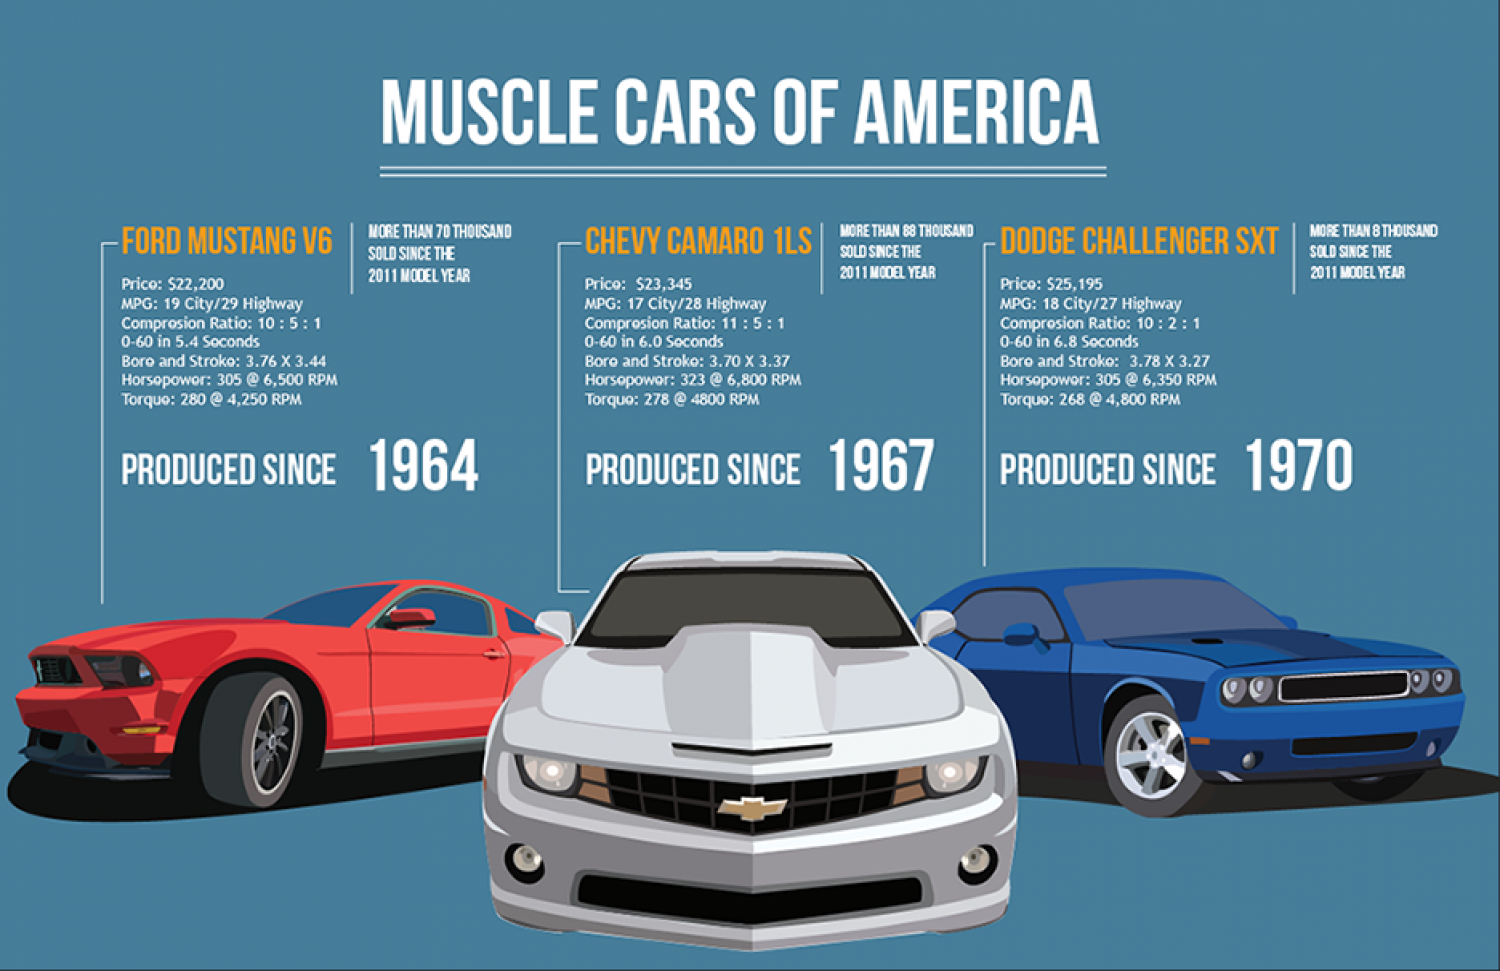 Top 3 Muscle Cars of America | Visual.ly